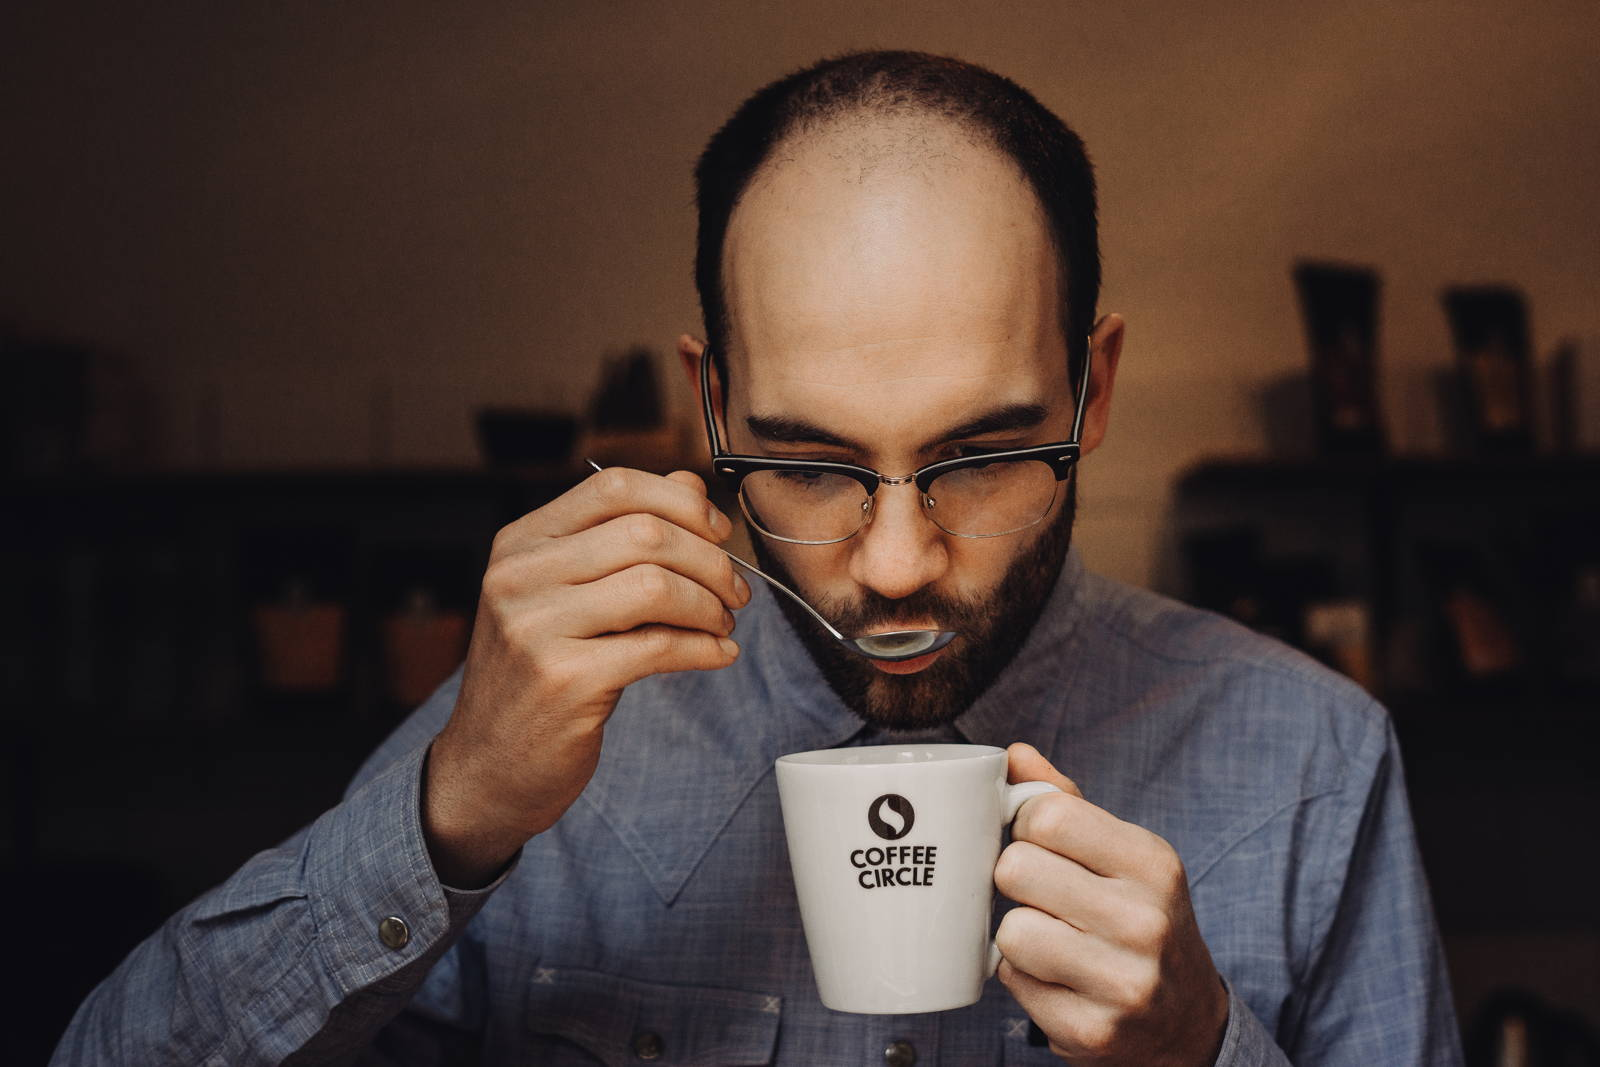 Wie Funktioniert Ein Espressokocher Wie Läuft Ein Quotcupping Quot Ab Coffee Circle